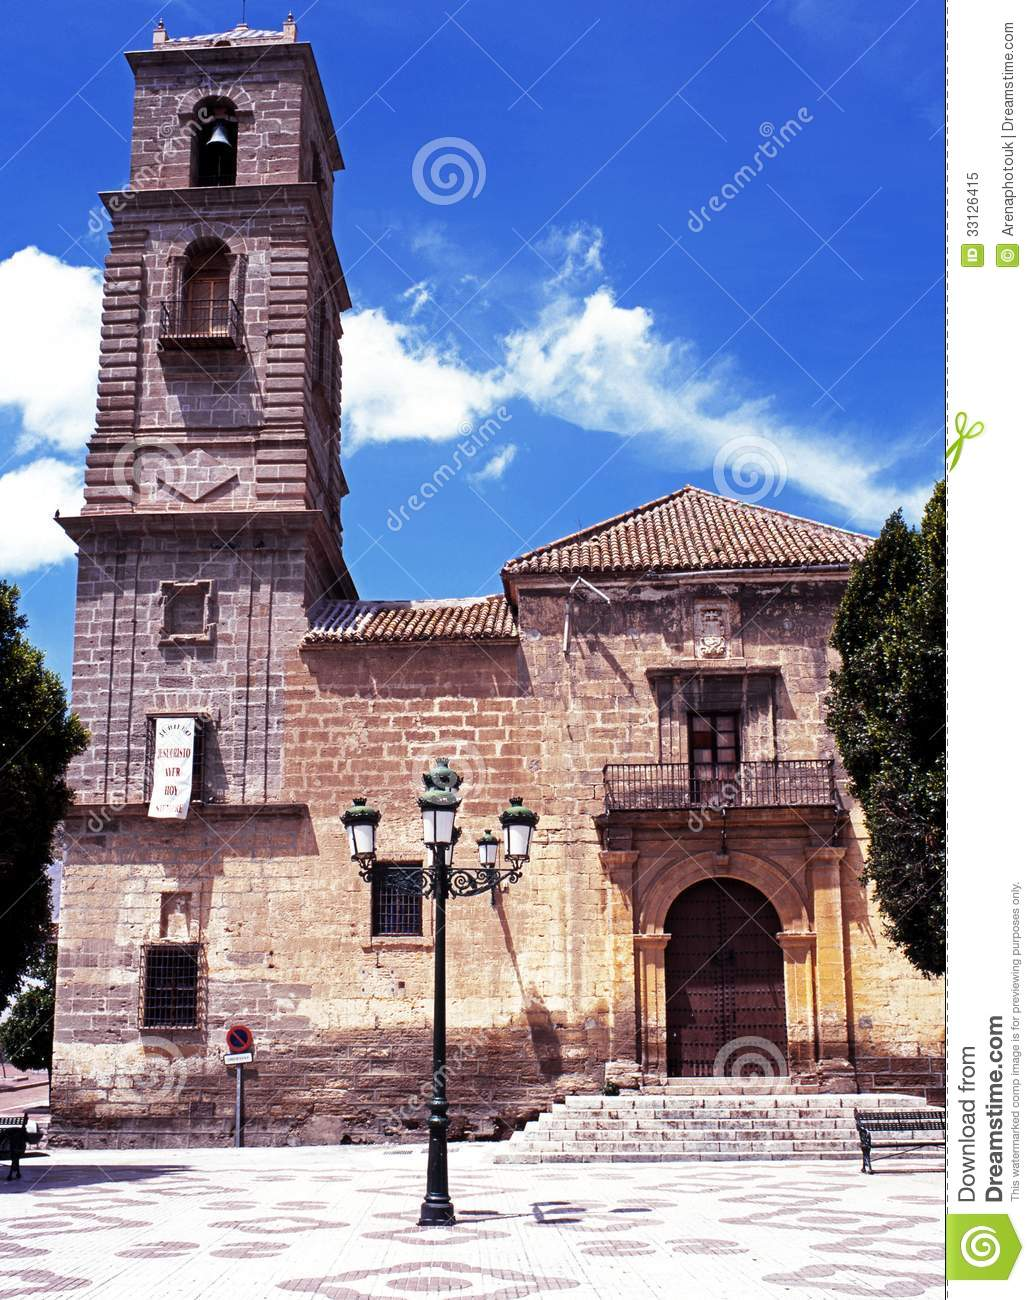 Alora Spain  city images : Church, Alora, Spain. Royalty Free Stock Photo Image: 33126415